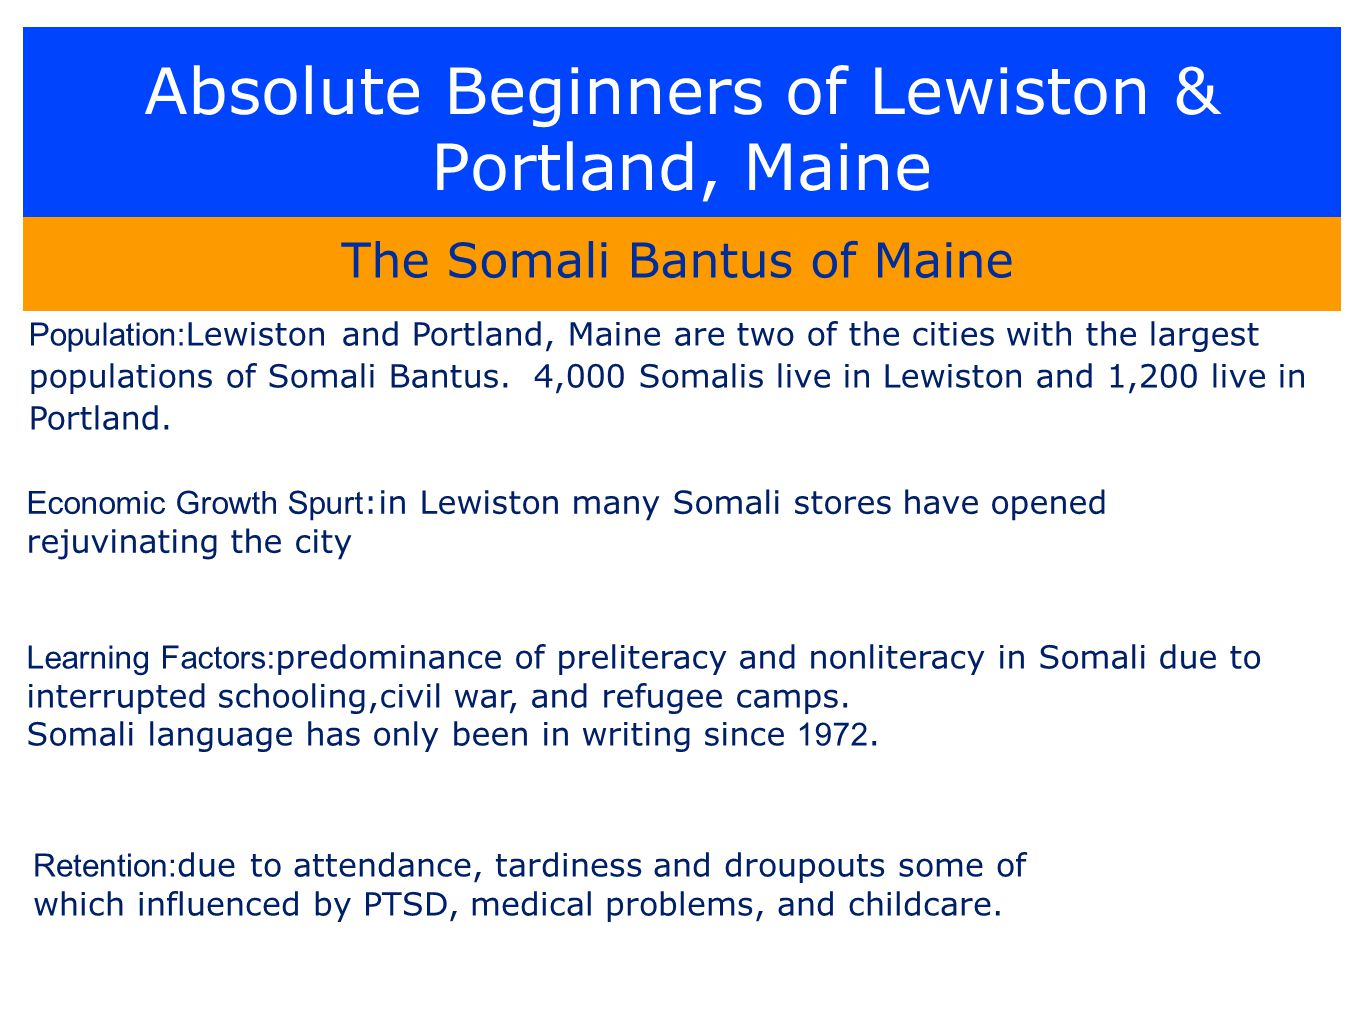 Absolute Beginners of Lewiston & Portland, Maine The Somali Bantus of Maine Population: Lewiston and Portland, Maine are two of the cities with the largest populations of Somali Bantus.